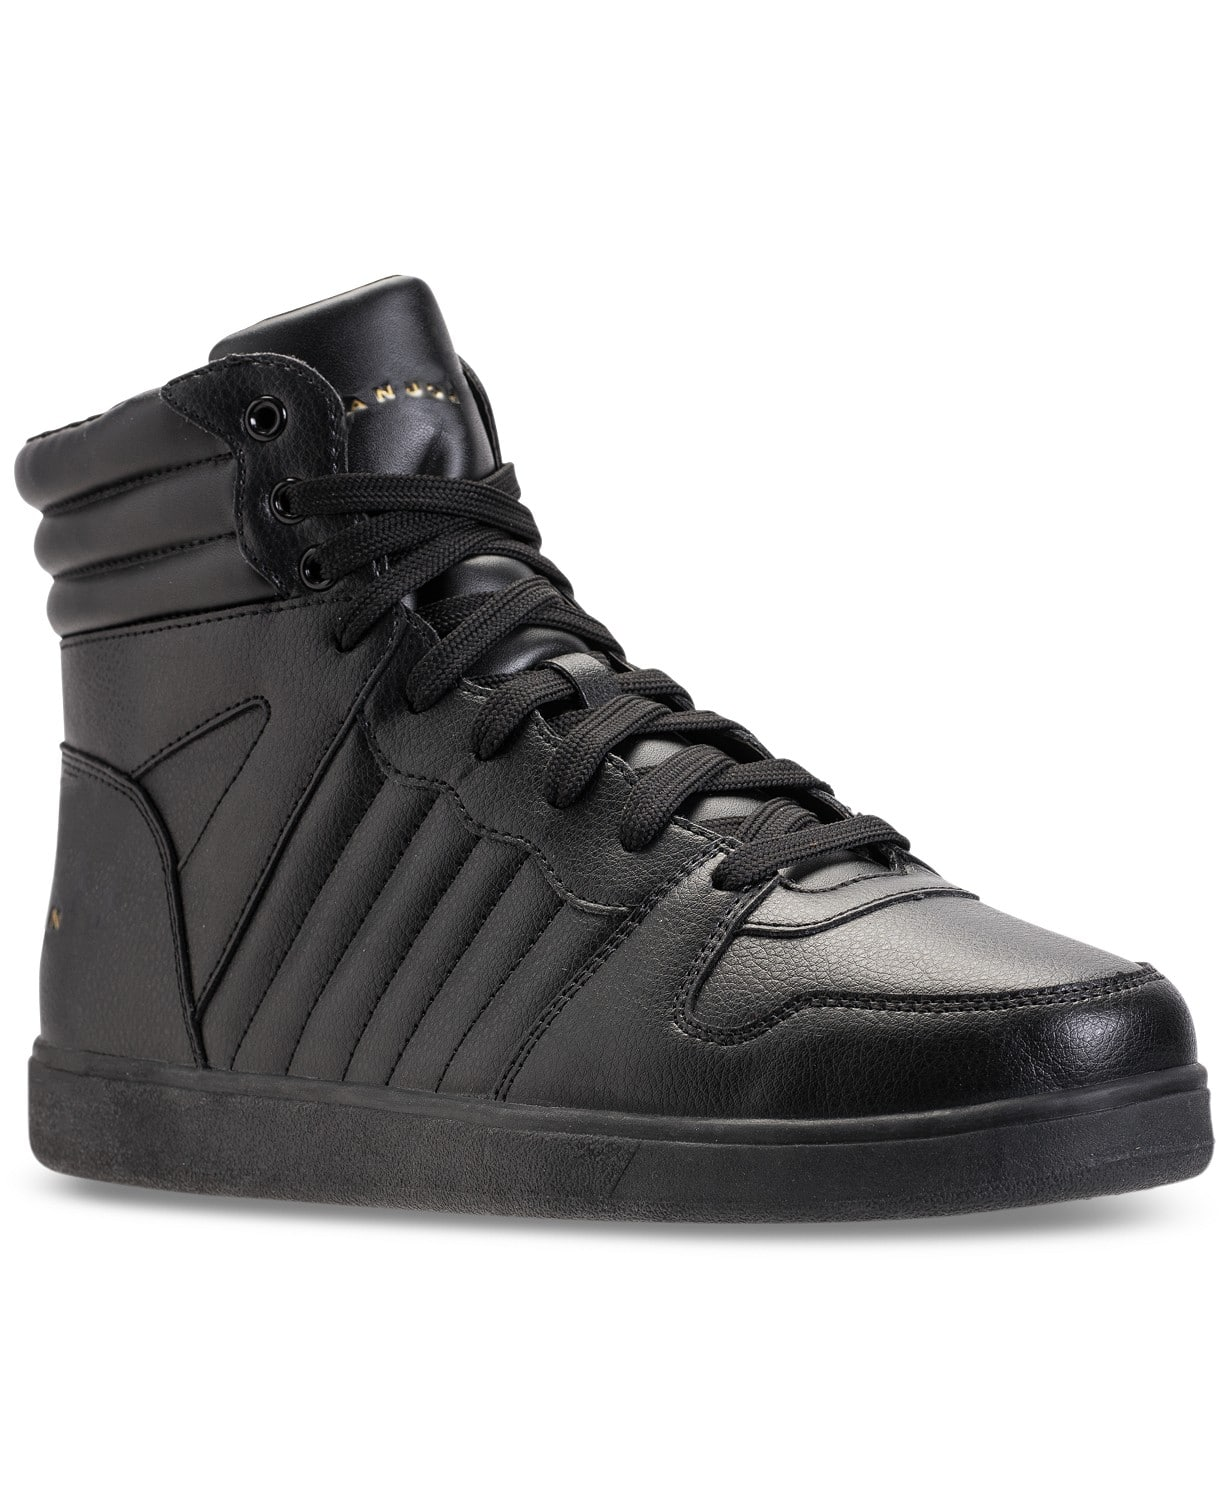 Sean John Men's Murano Supreme High Top Casual Sneakers (various colors), $19 (Reg. $70)